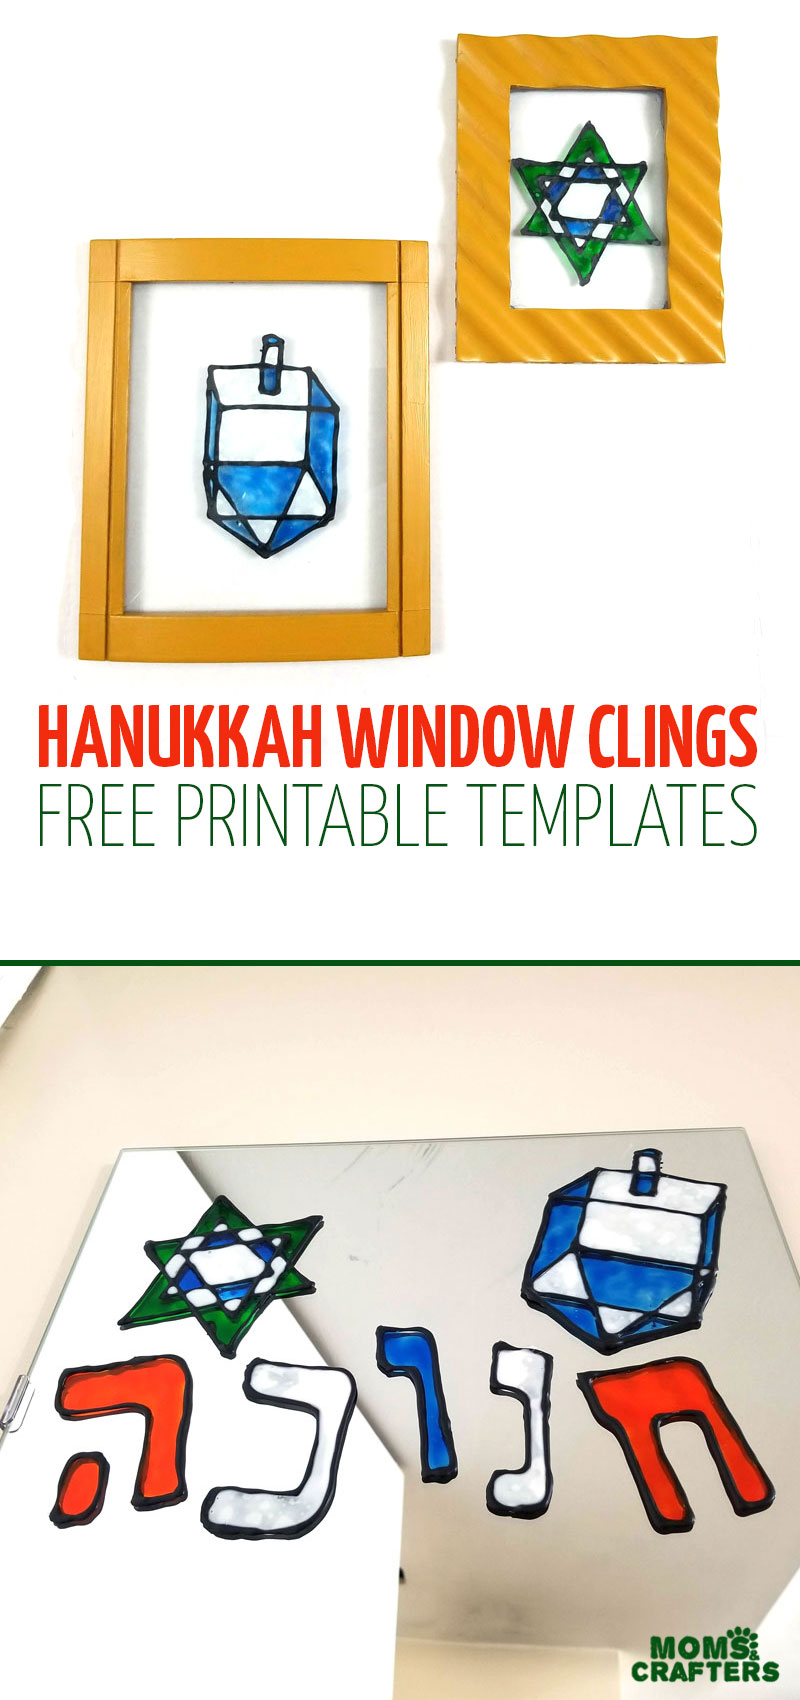 Make some fun DIY Hanukkah window clings witha super fun free printable template! This sweet Chanukah craft for kids and adults make great Hannukah decor